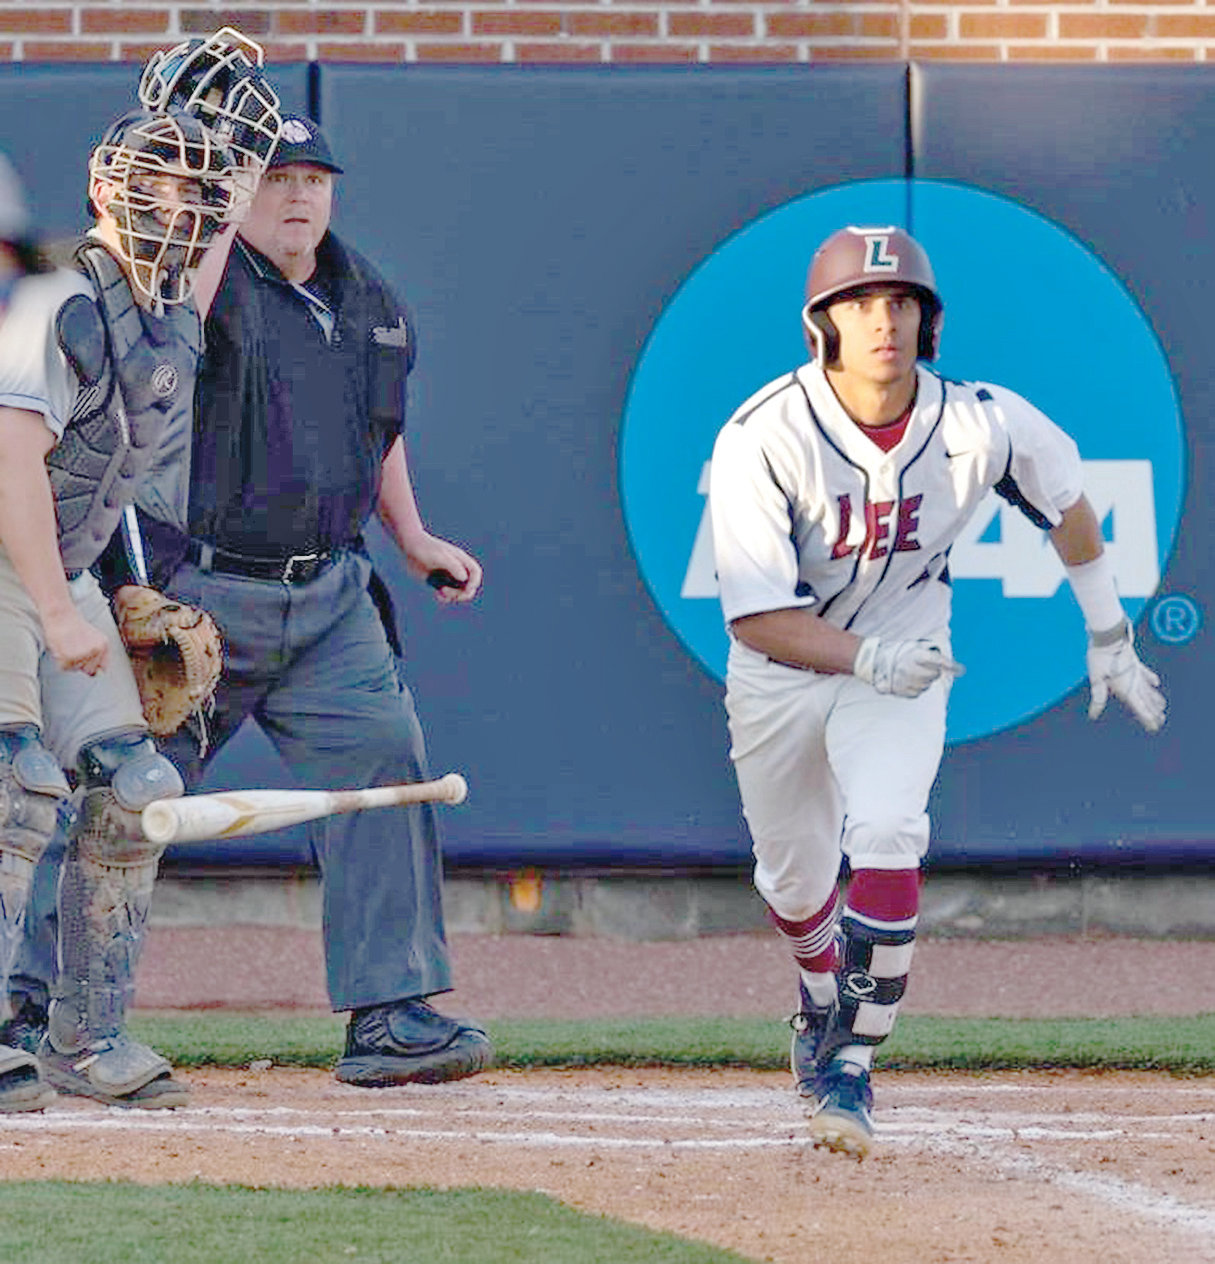 LEE UNIVERSITY senior Fernando Ortiz watches a base hit to right in Wednesday's nightcap as the Flames were swept by Young Harris at Olympic Field.